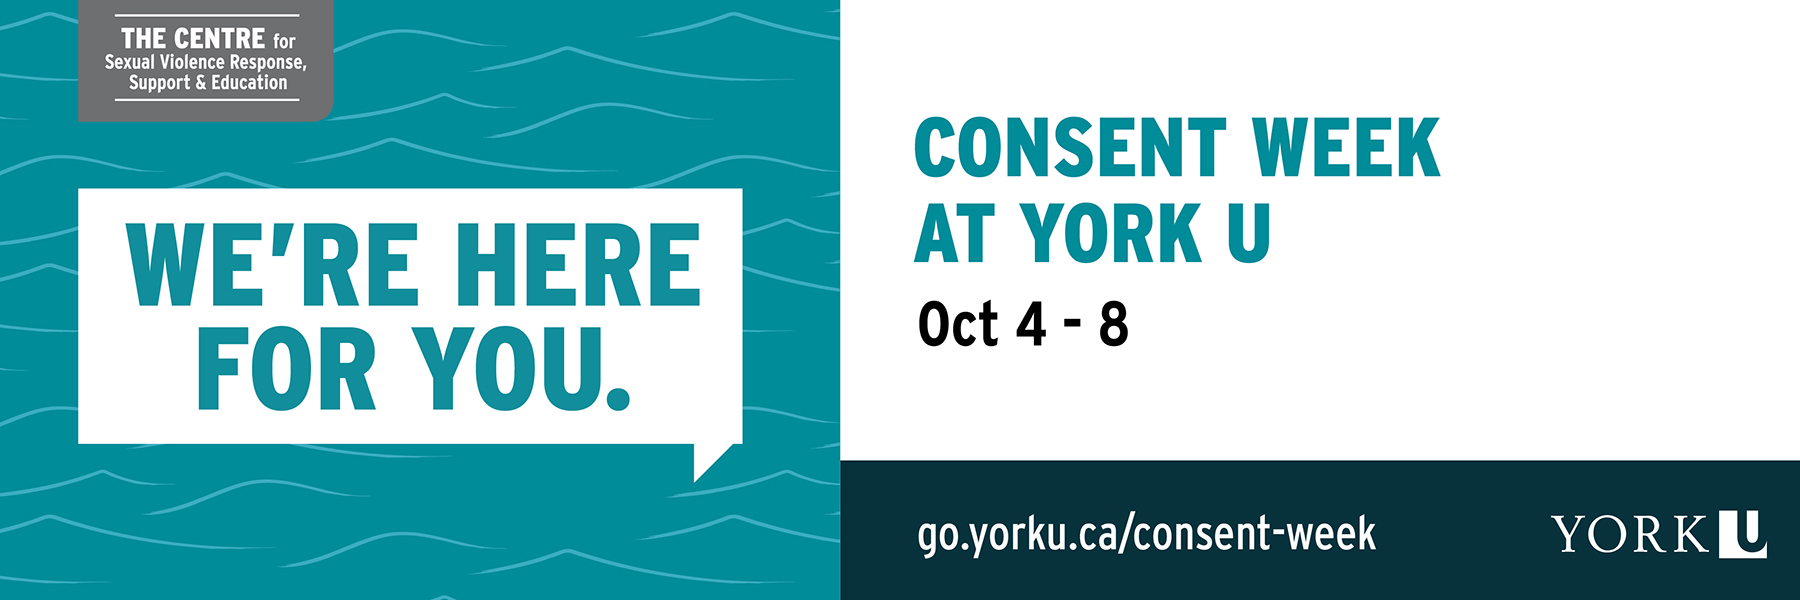 Featured image for the Centre's week of Consent events